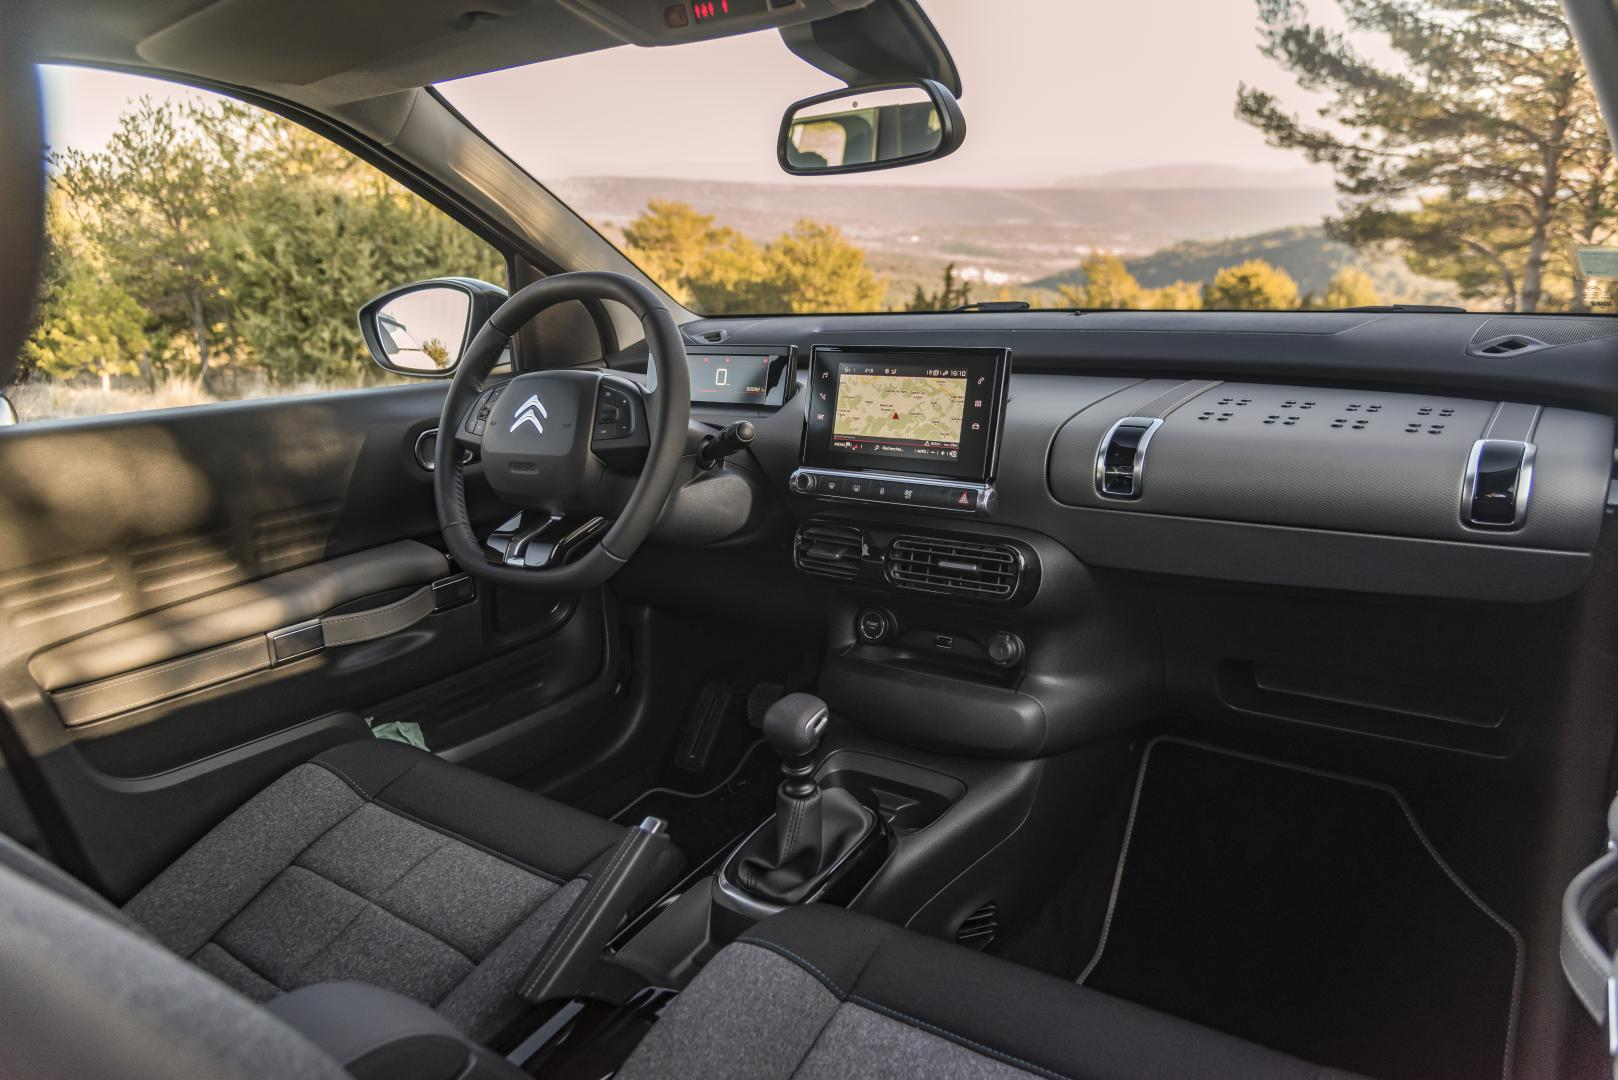 Citroën C4 Cactus PureTech 110 Business interieur (2018)